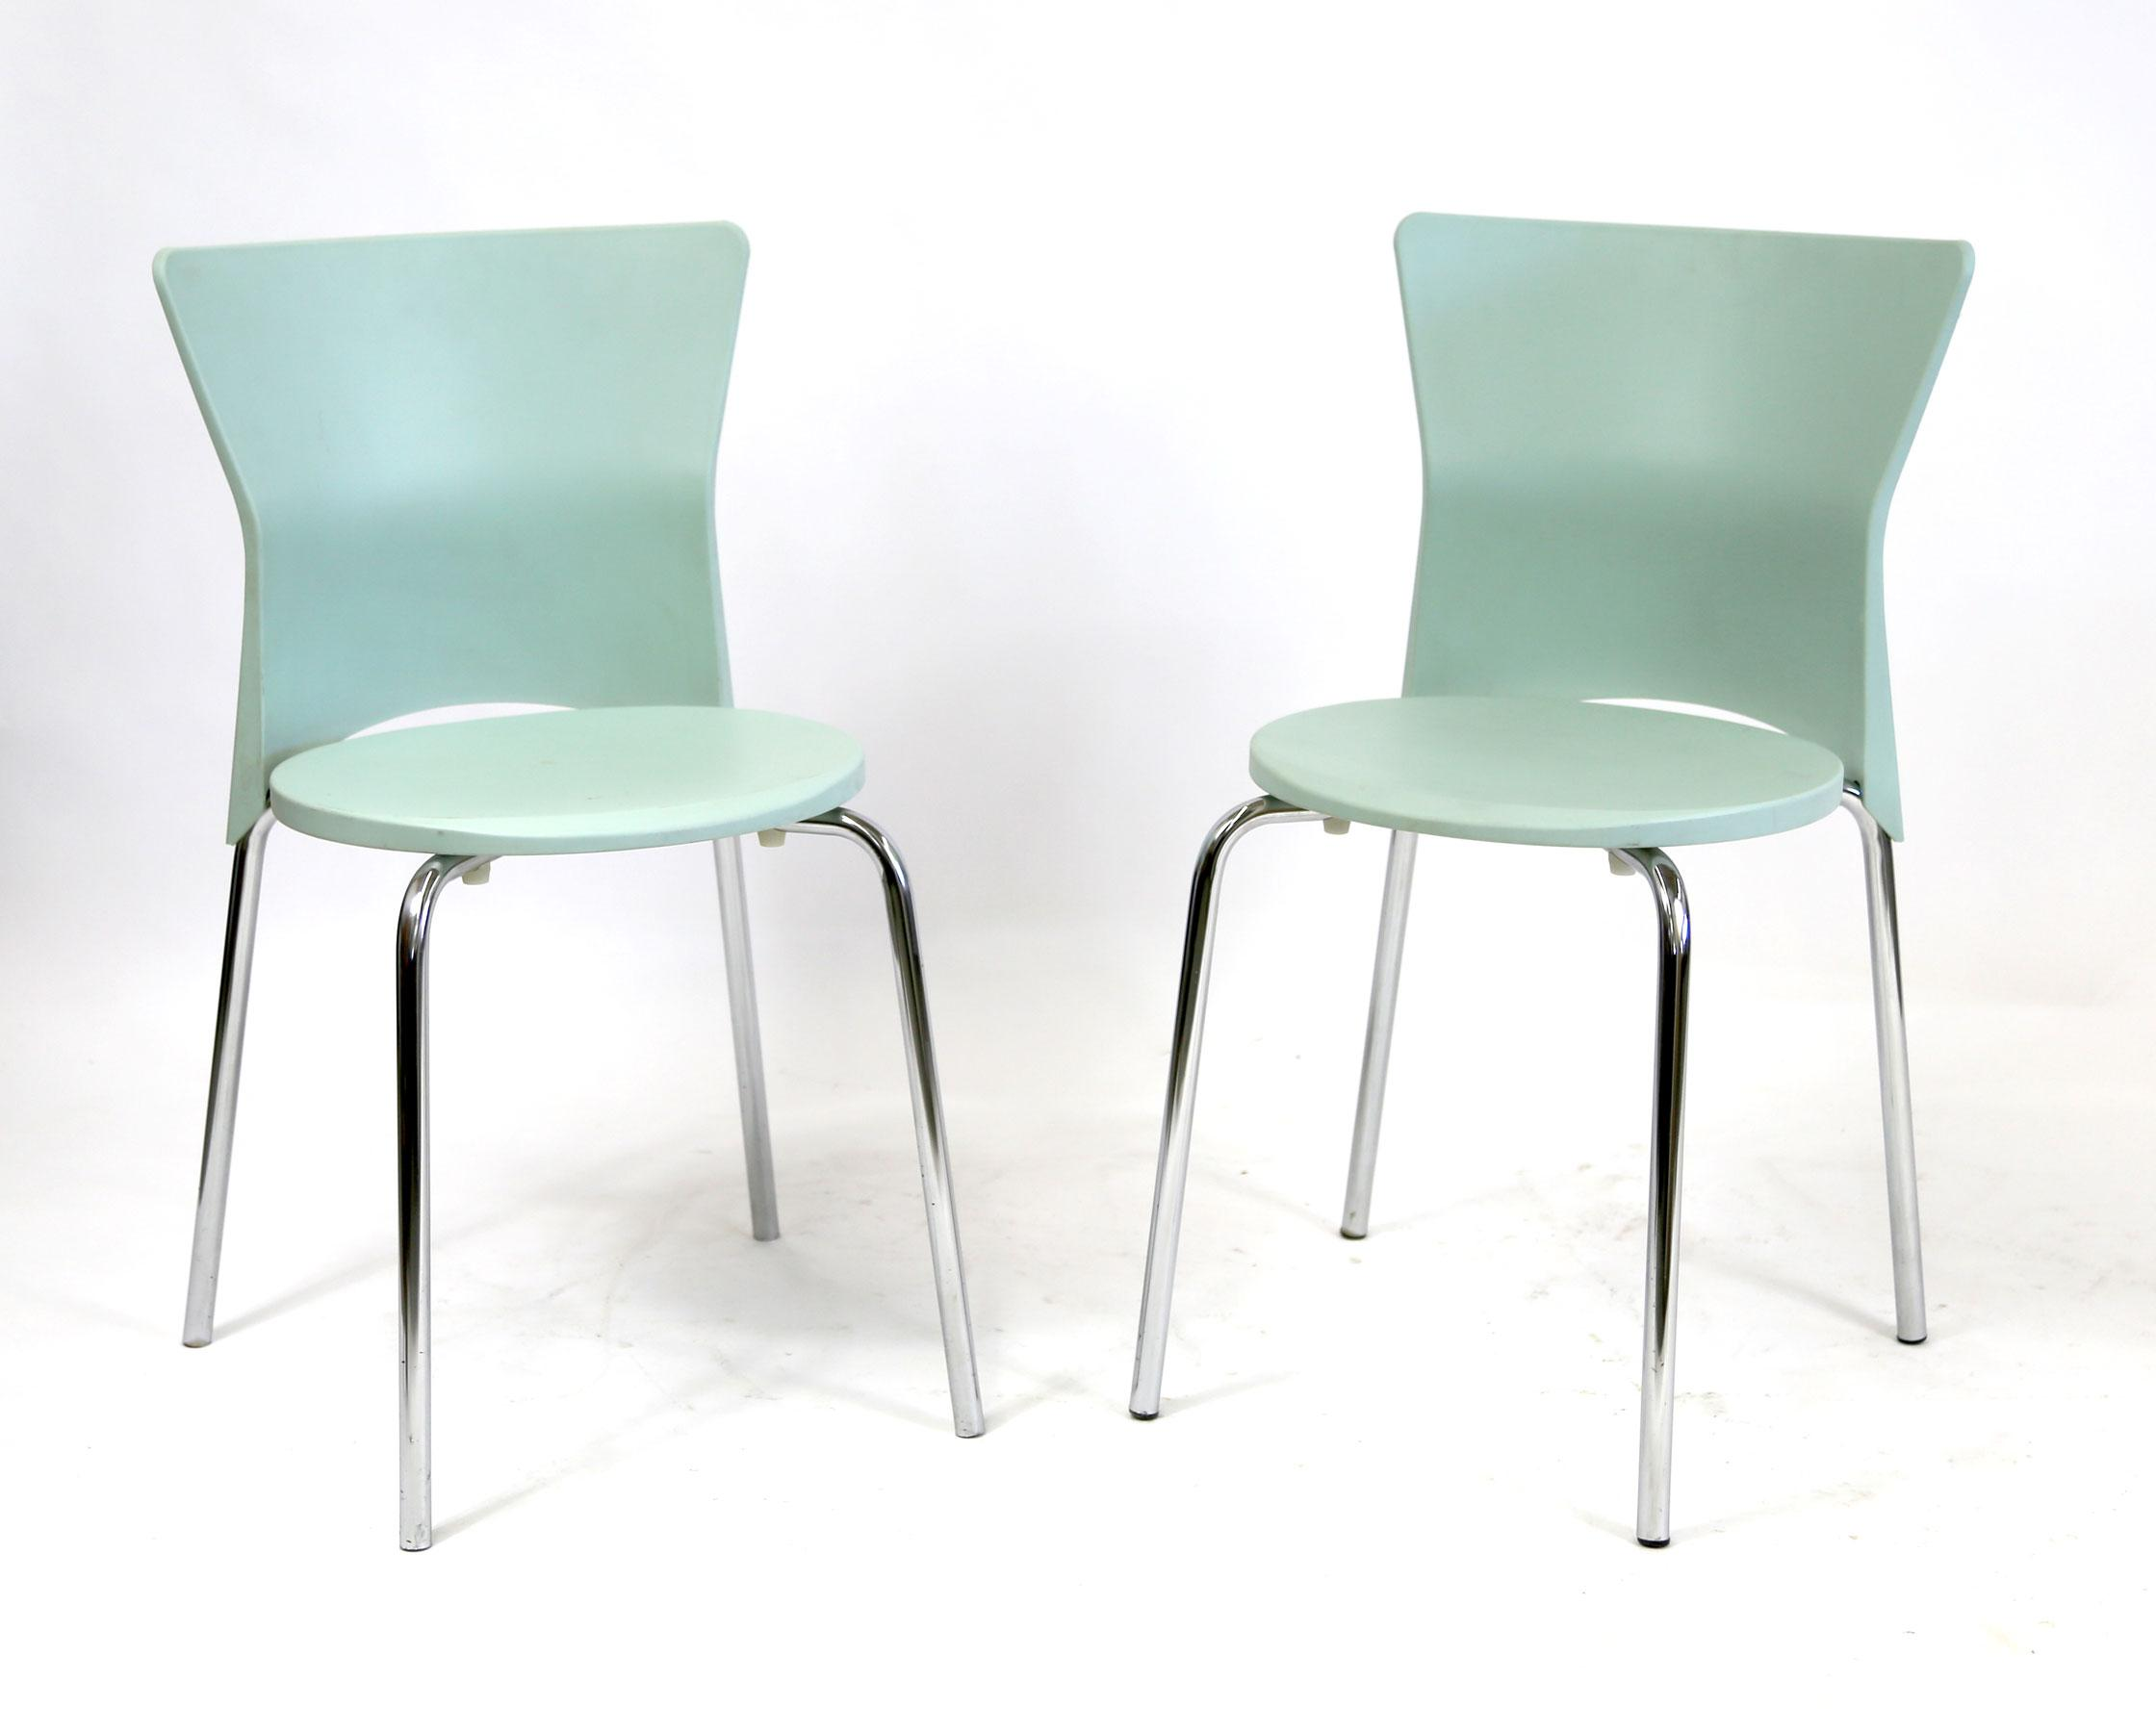 A Quirky Pair Of Dark Blue Side Chairs With A Plastic Blue Shell Seat And  Metal